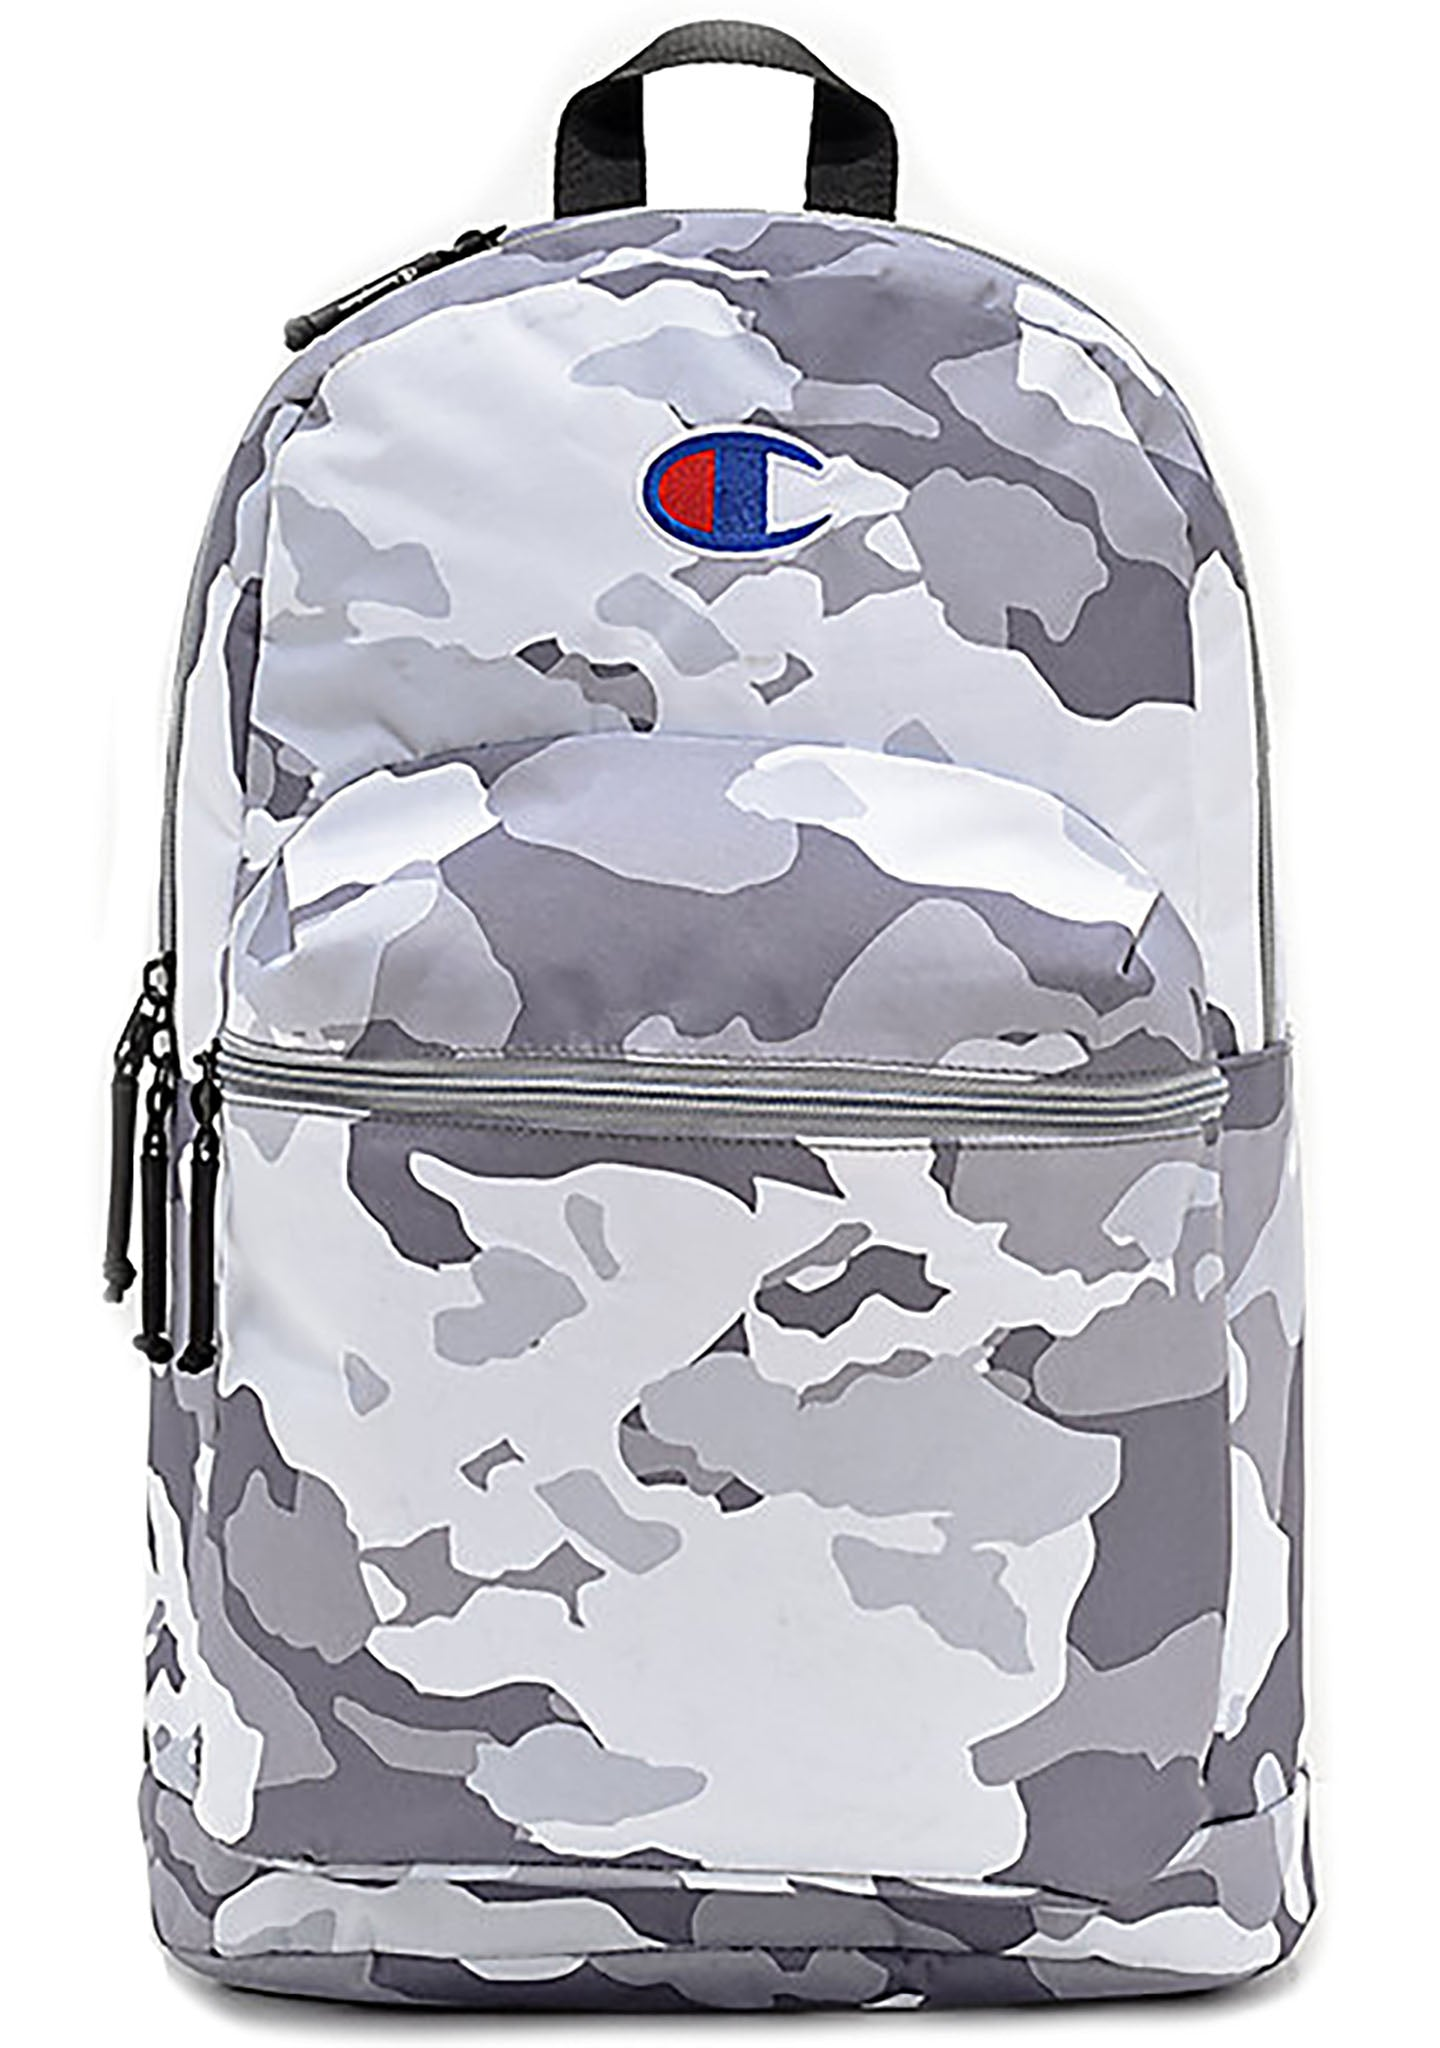 Supercize Backpack in Grey Camo